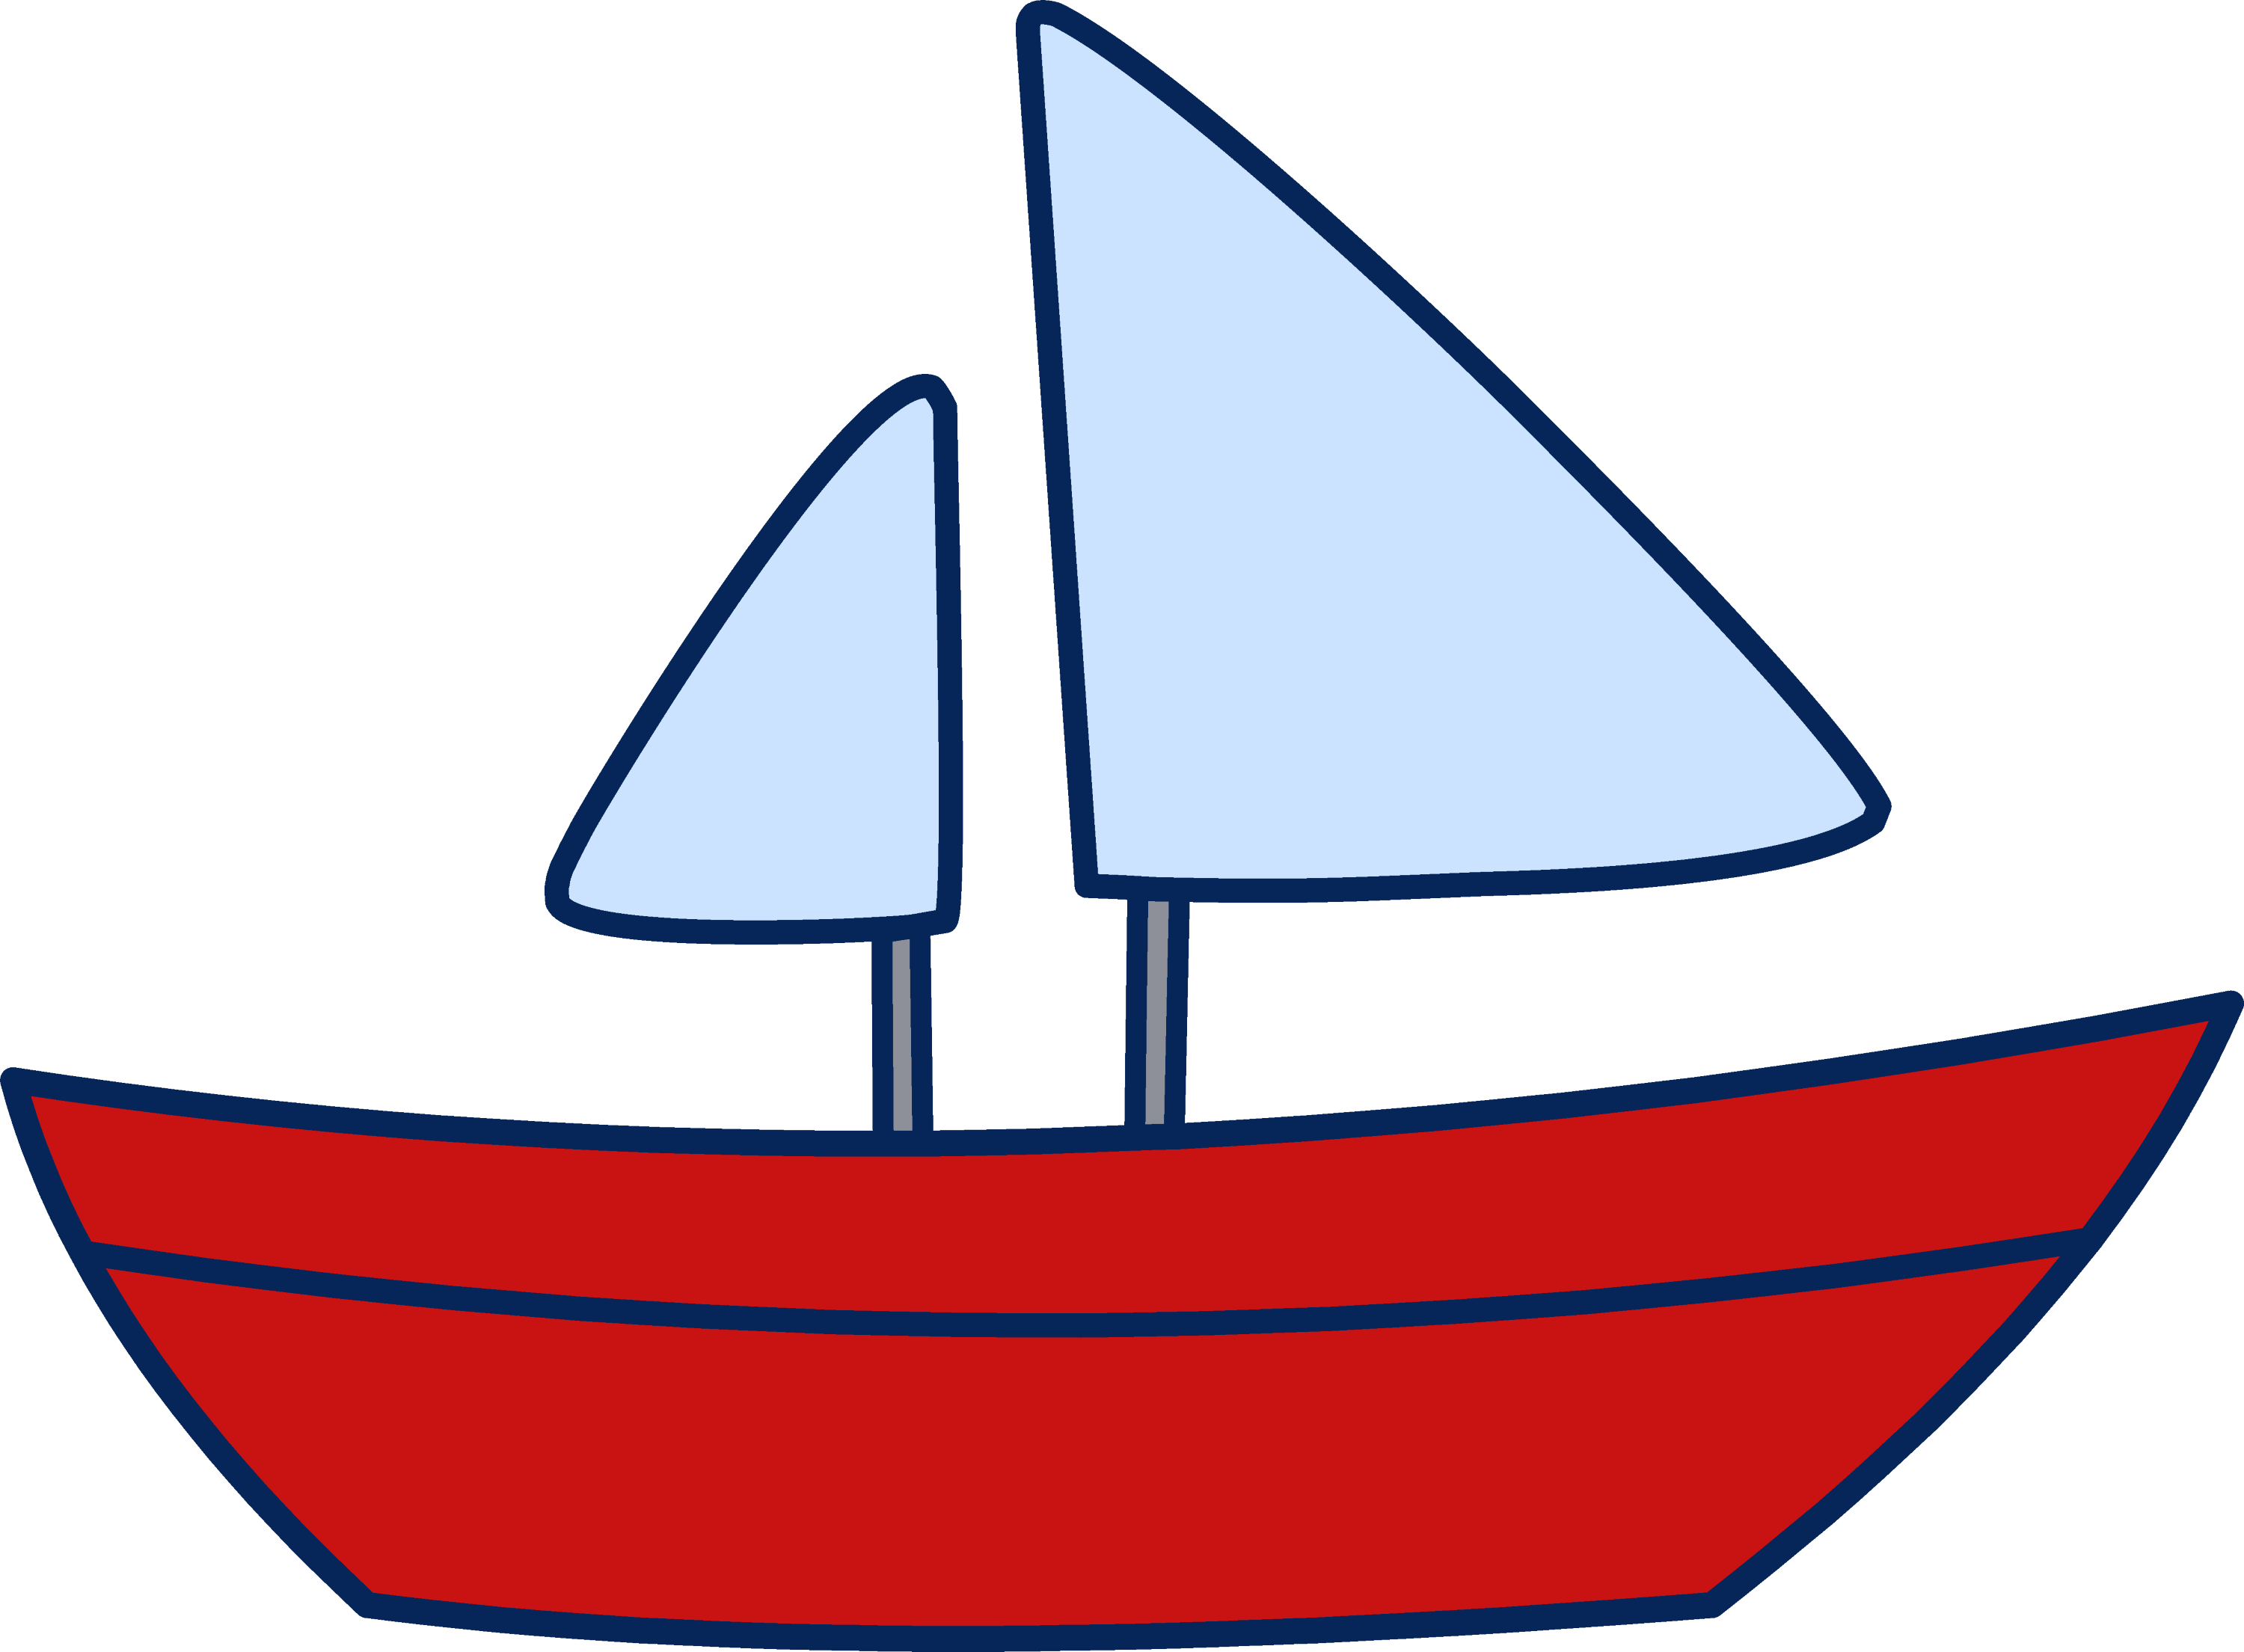 Sail Boat Clip Art Images & Pictures - Becuo